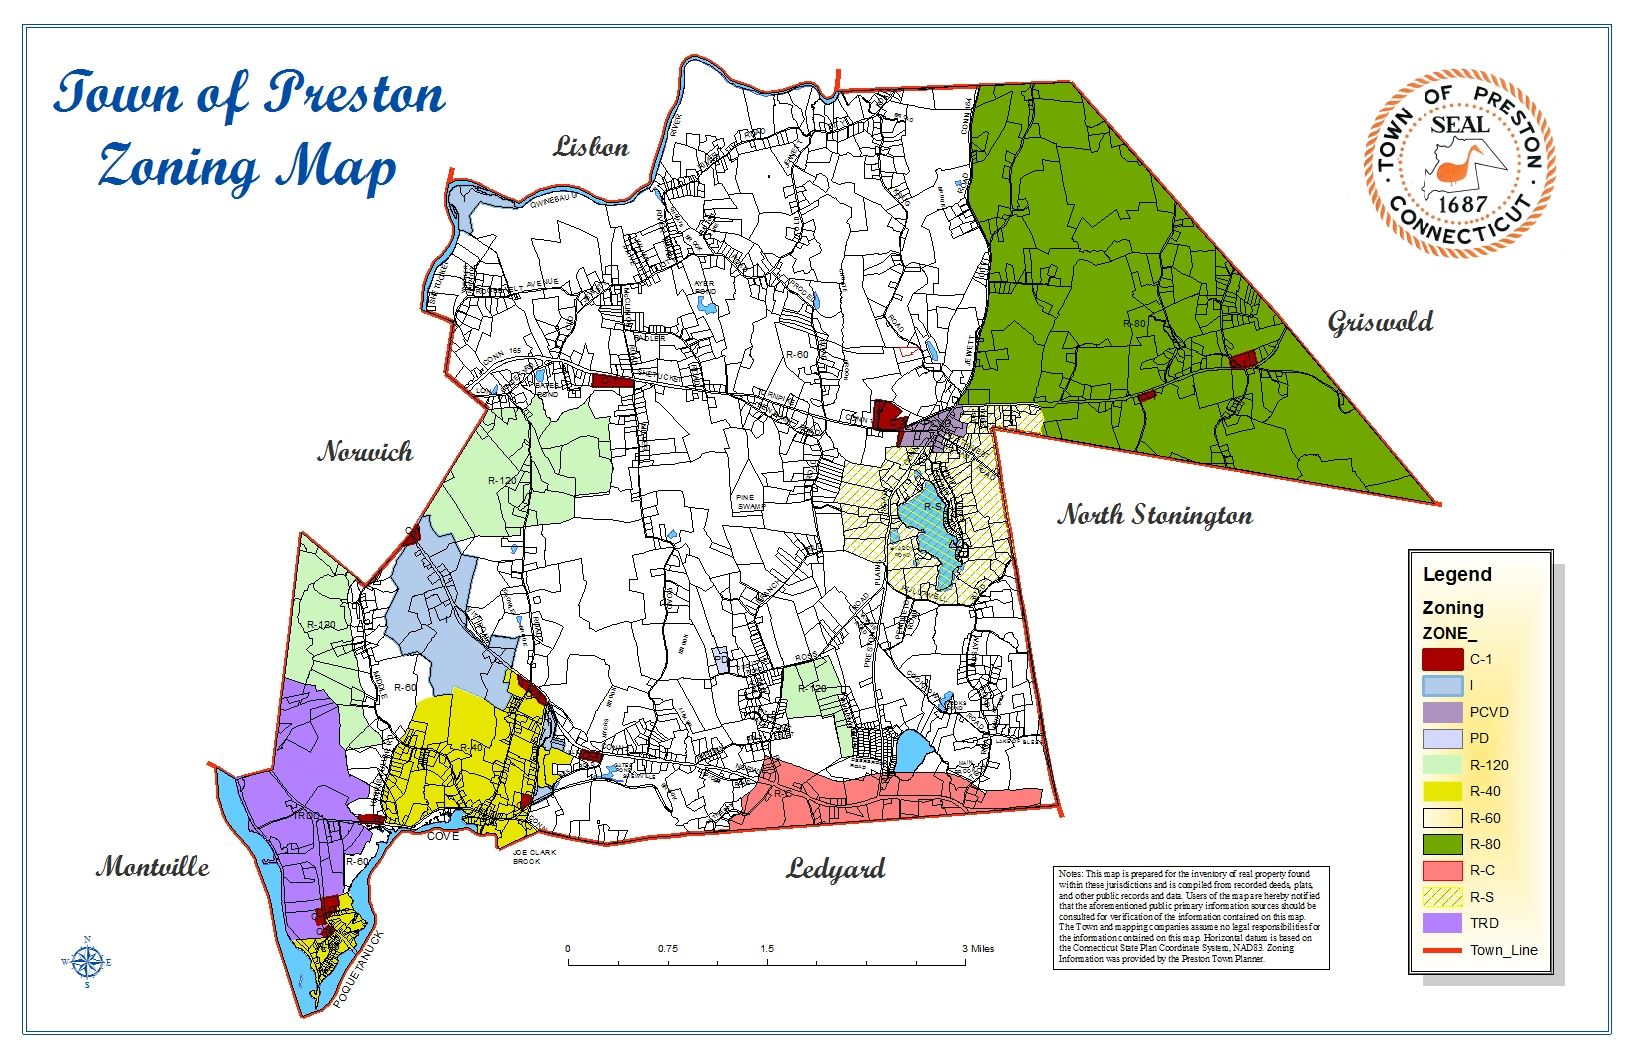 Zoning Map   Preston, CT on land use map, zoning board of appeals, survey map, residential map, zoning regulations, future land use map, planning commission, streets map, city council, floodplain map, mashpee ma town map, zoning ordinance, e zone map, climate zone map, business map, wetlands map, parking map, open space map, transportation map, soils map, india earthquake zone map, zoning code,